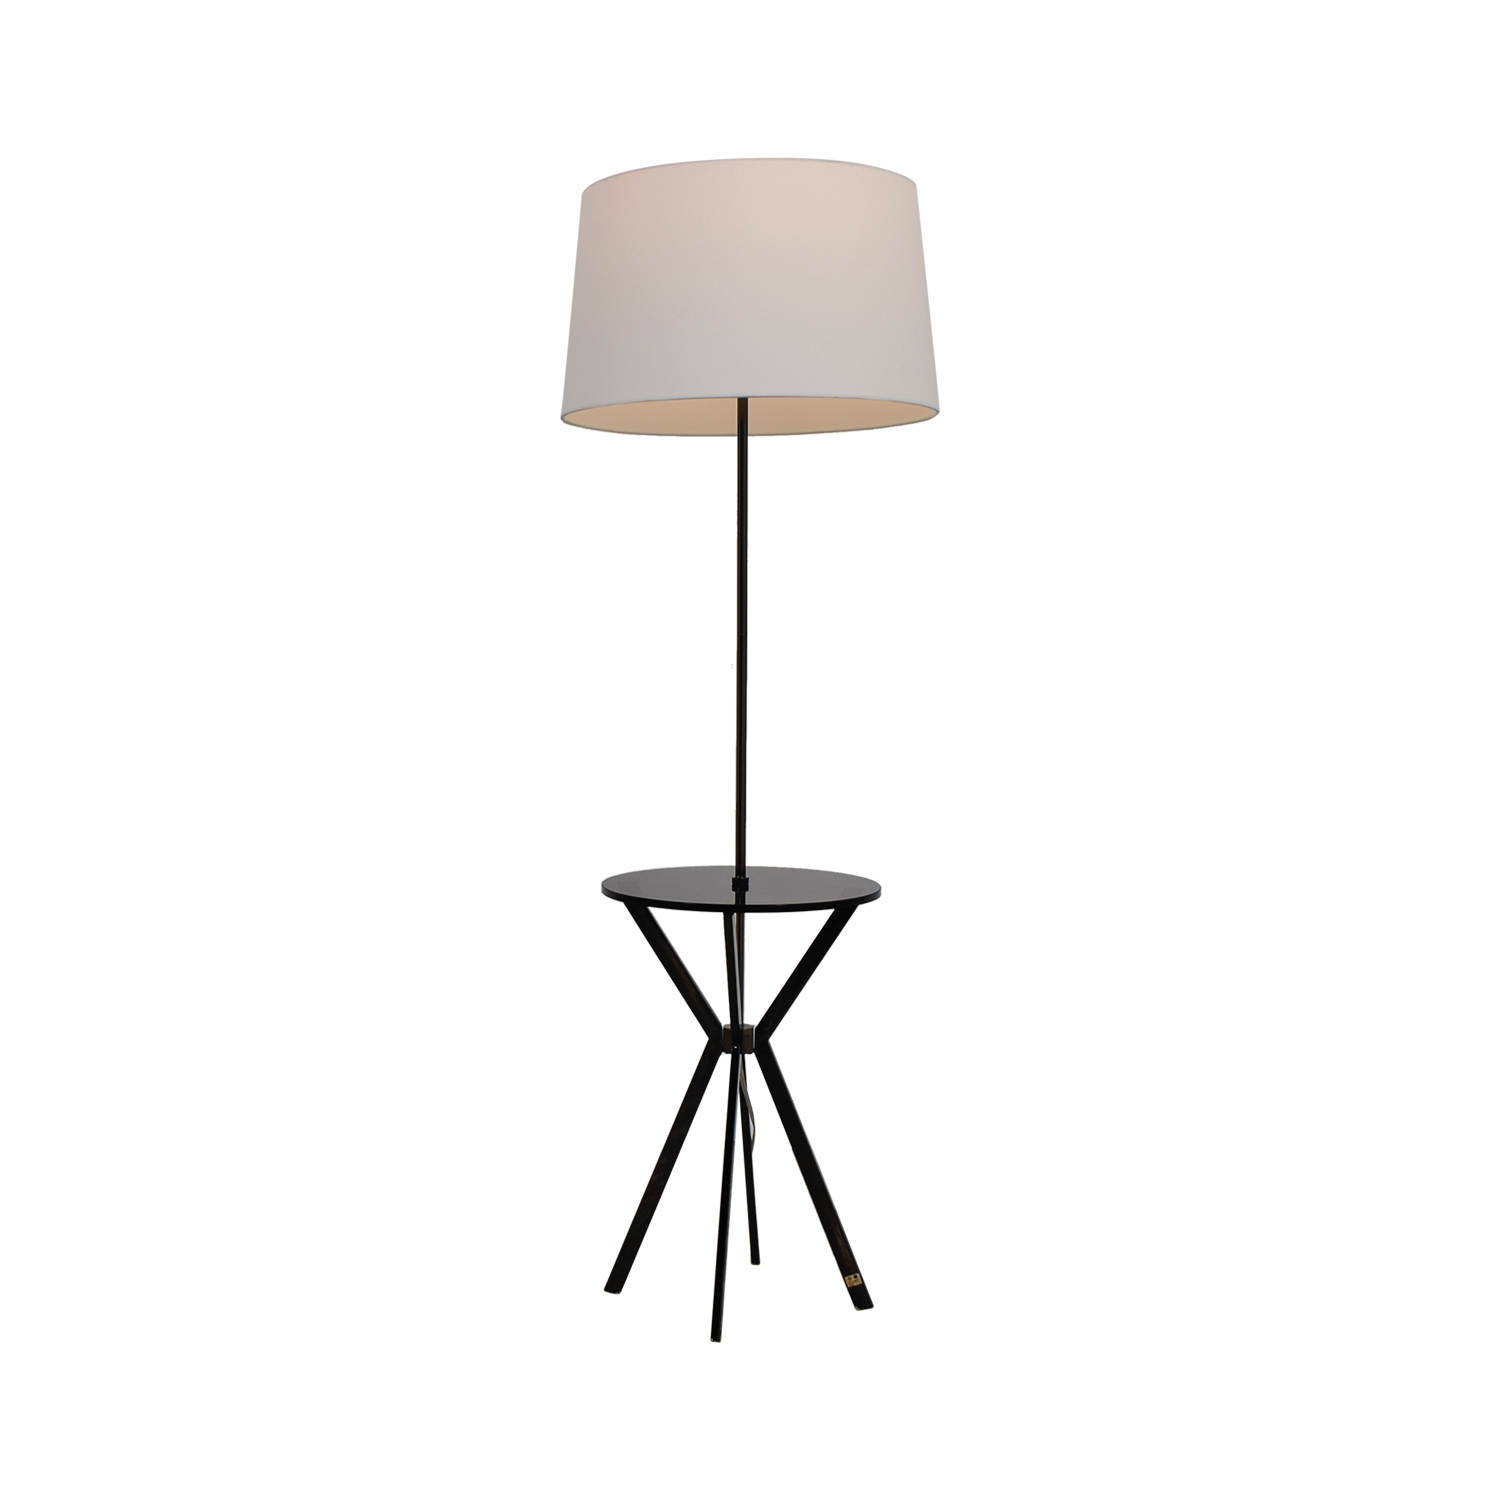 West Elm West Elm Floor Lamp With Table Attached Decor